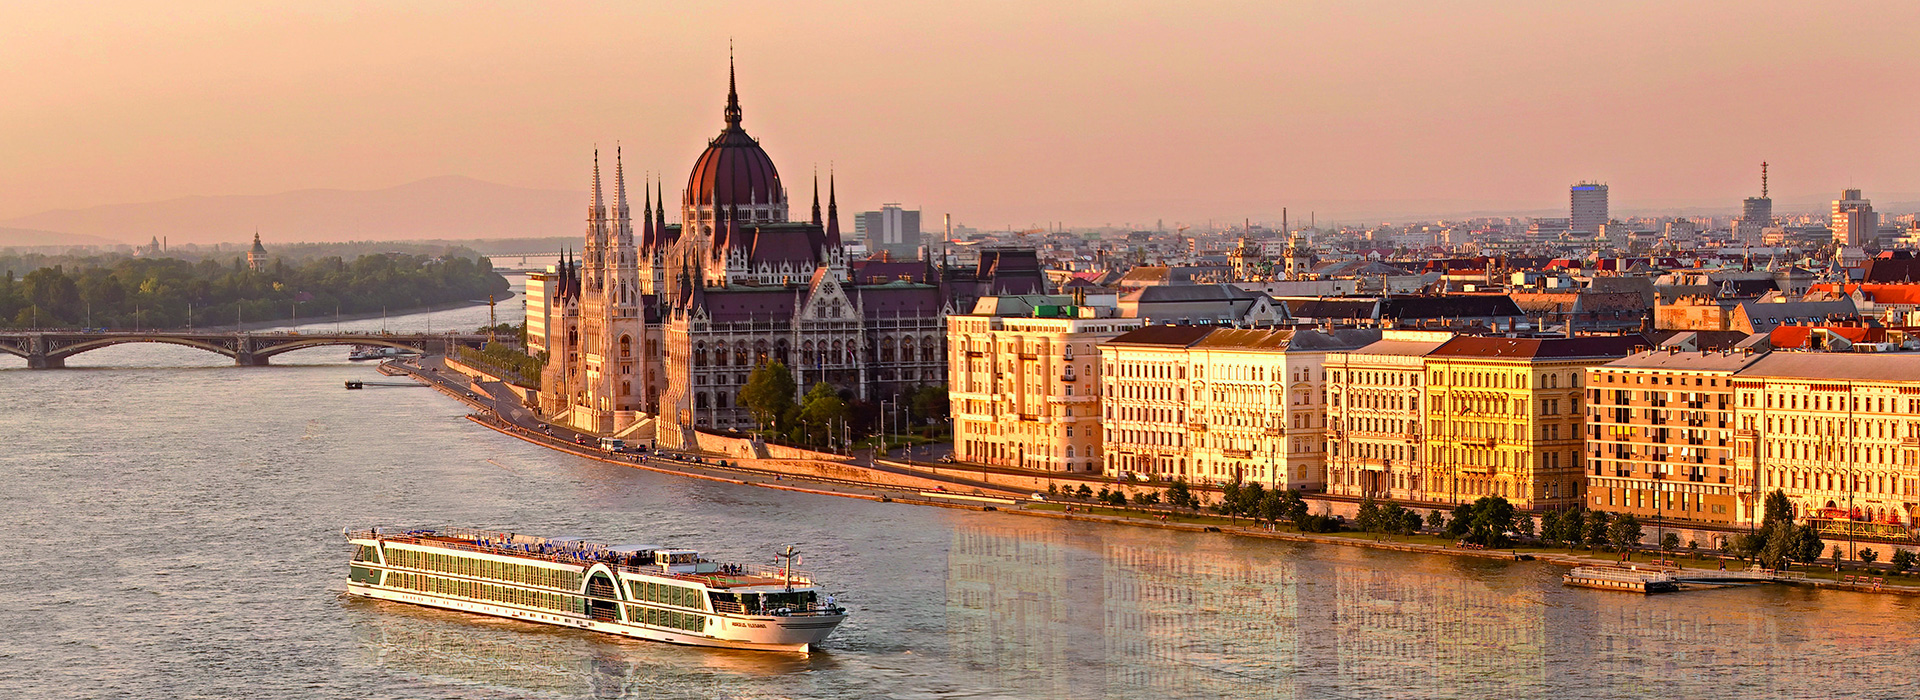 Budapest Sightseeing Tour by Boat